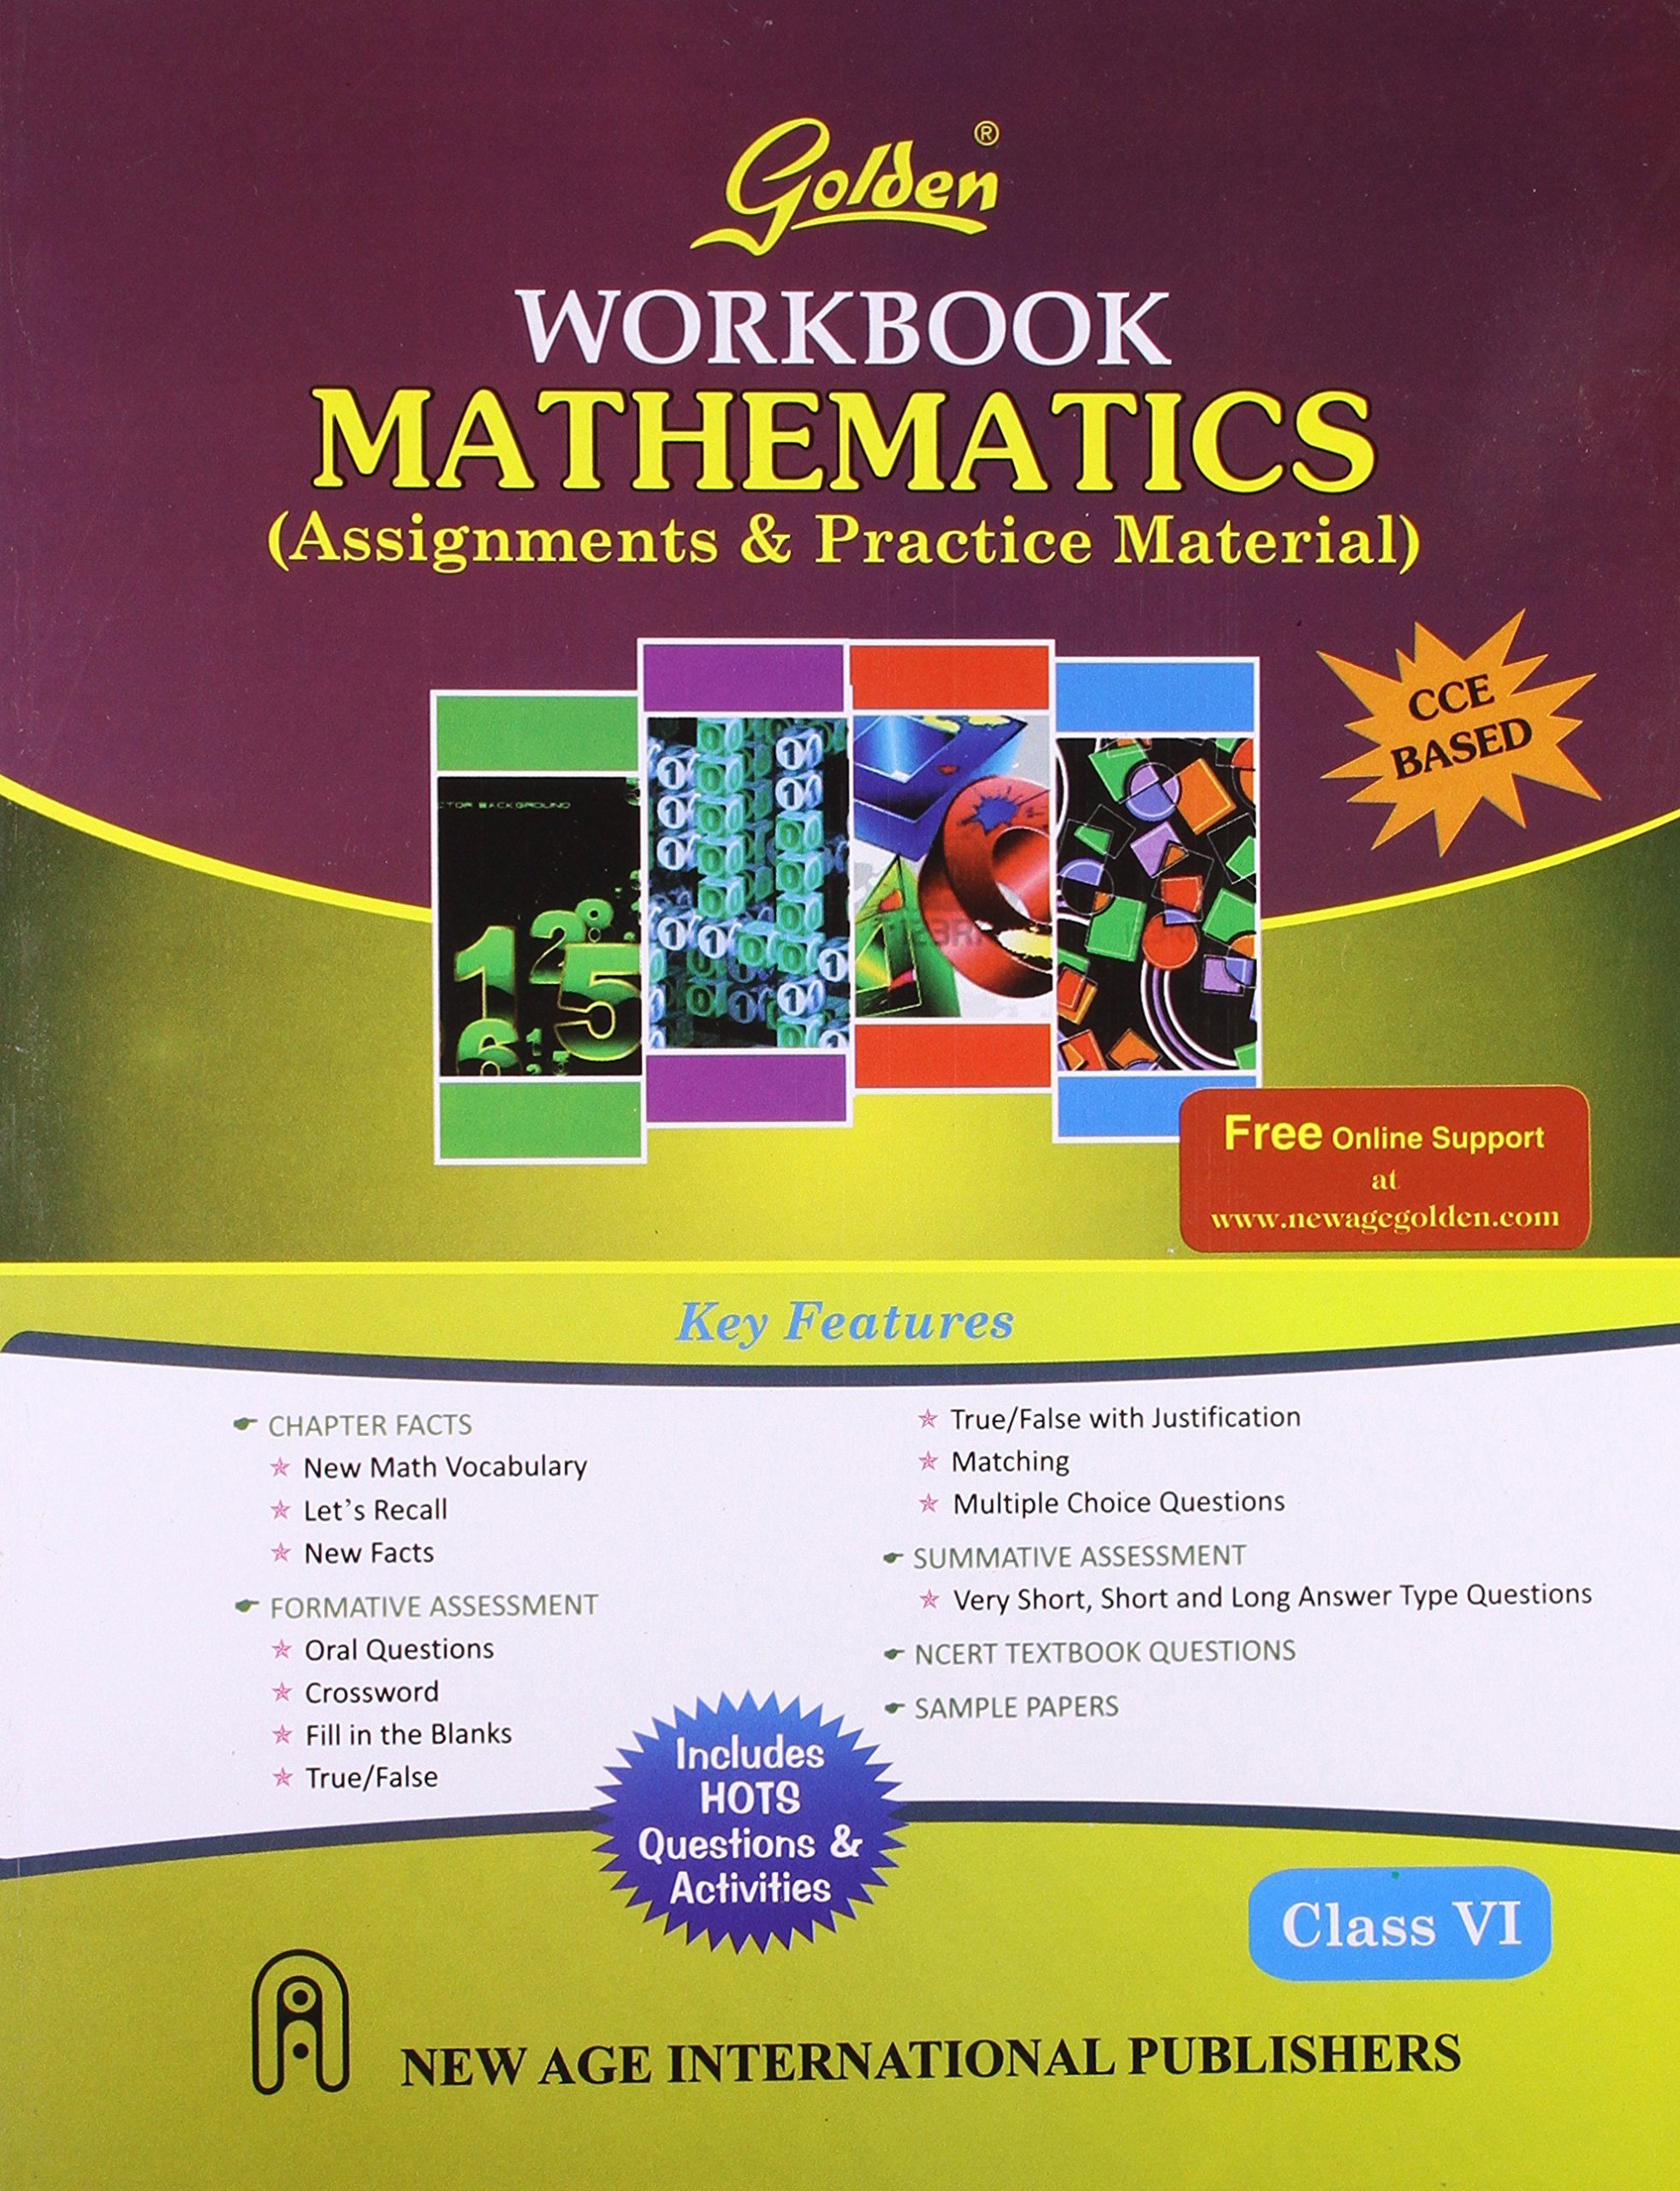 Golden Workbook Mathematics: Assignments & Practice Material for